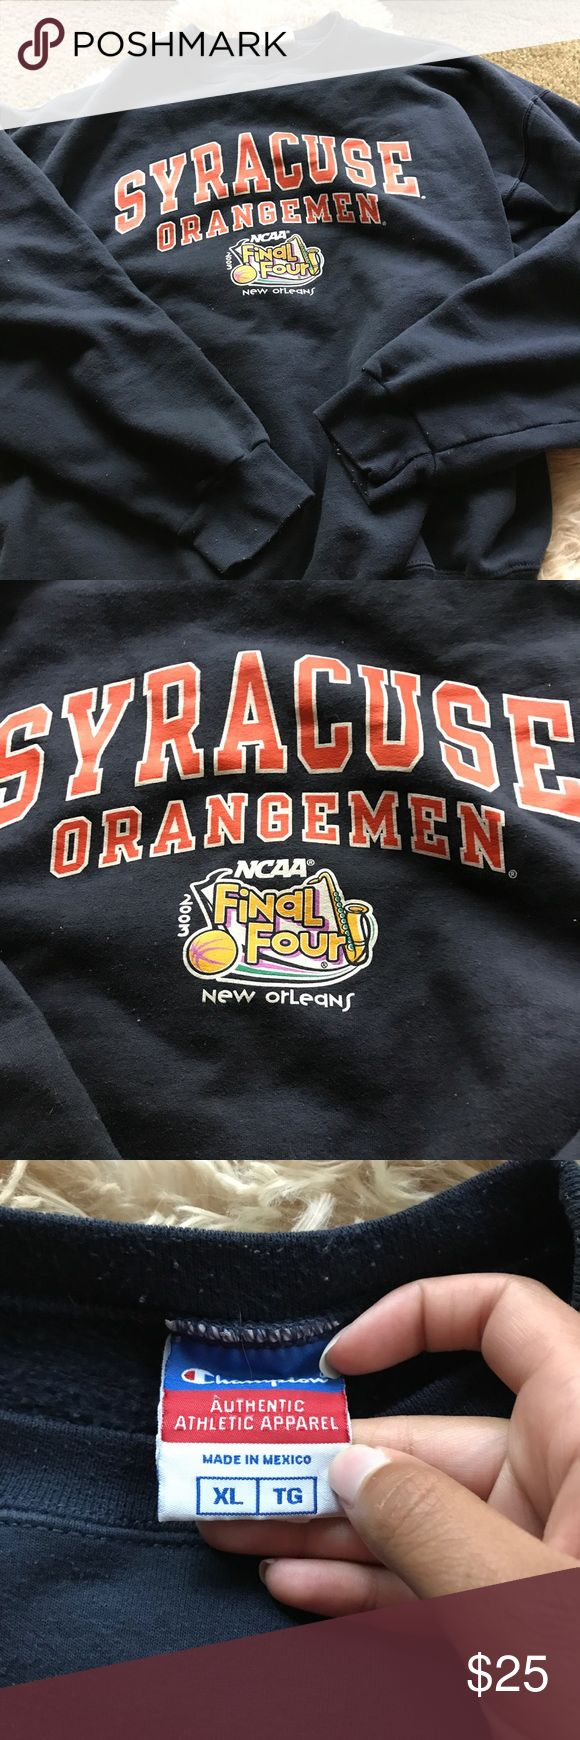 Syracuse basketball crew neck Final Four Basketball crew neck from the 2003 NCAA tournament size woman's XL Champion Tops Sweatshirts & Hoodies